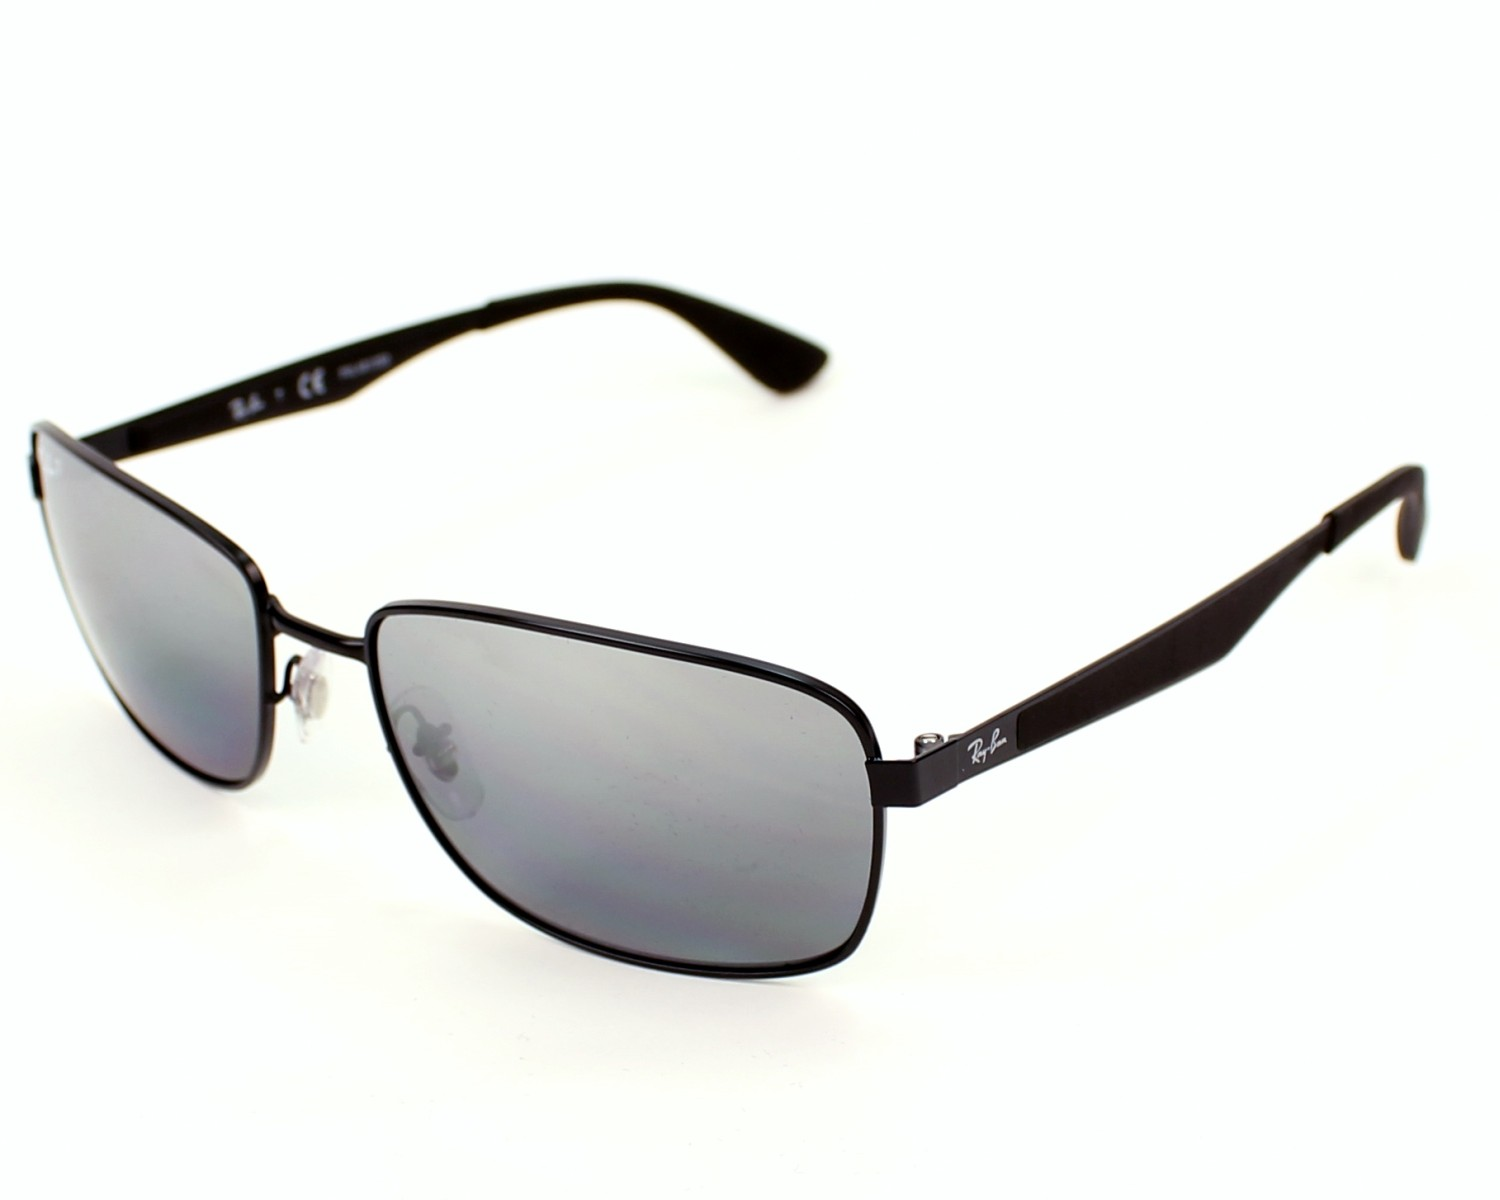 e17e3333ed thumbnail Sunglasses Ray-Ban RB-3529 006 82 - Black profile view